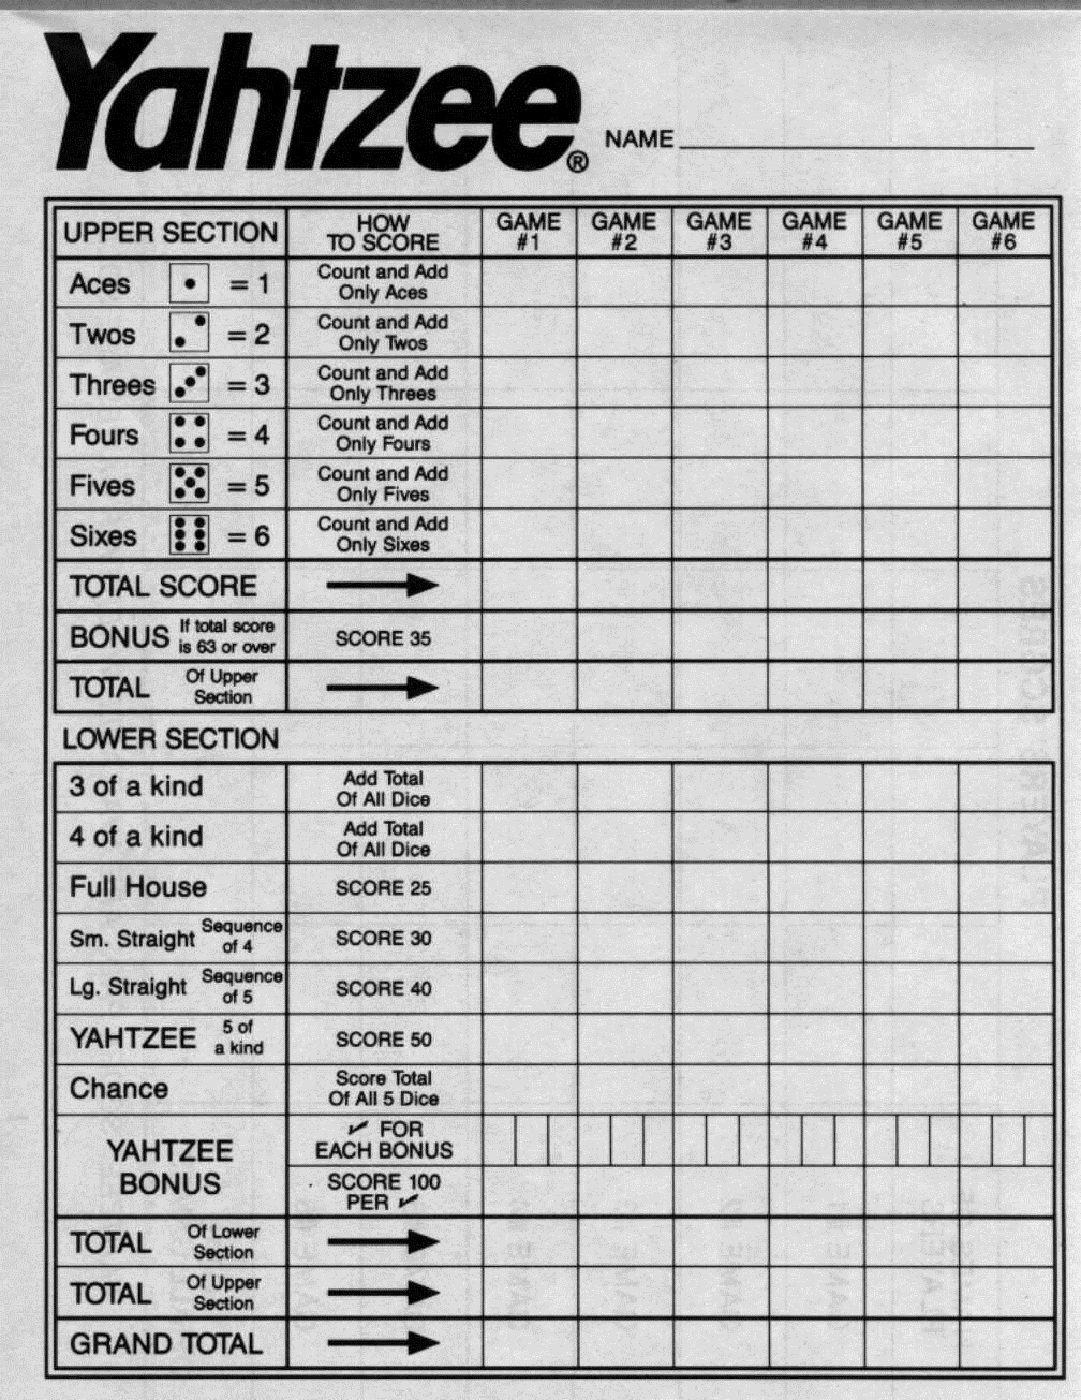 image regarding Yahtzee Score Sheet Printable known as Yahtzee Ranking Sheets - Resume Illustrations Resume Template